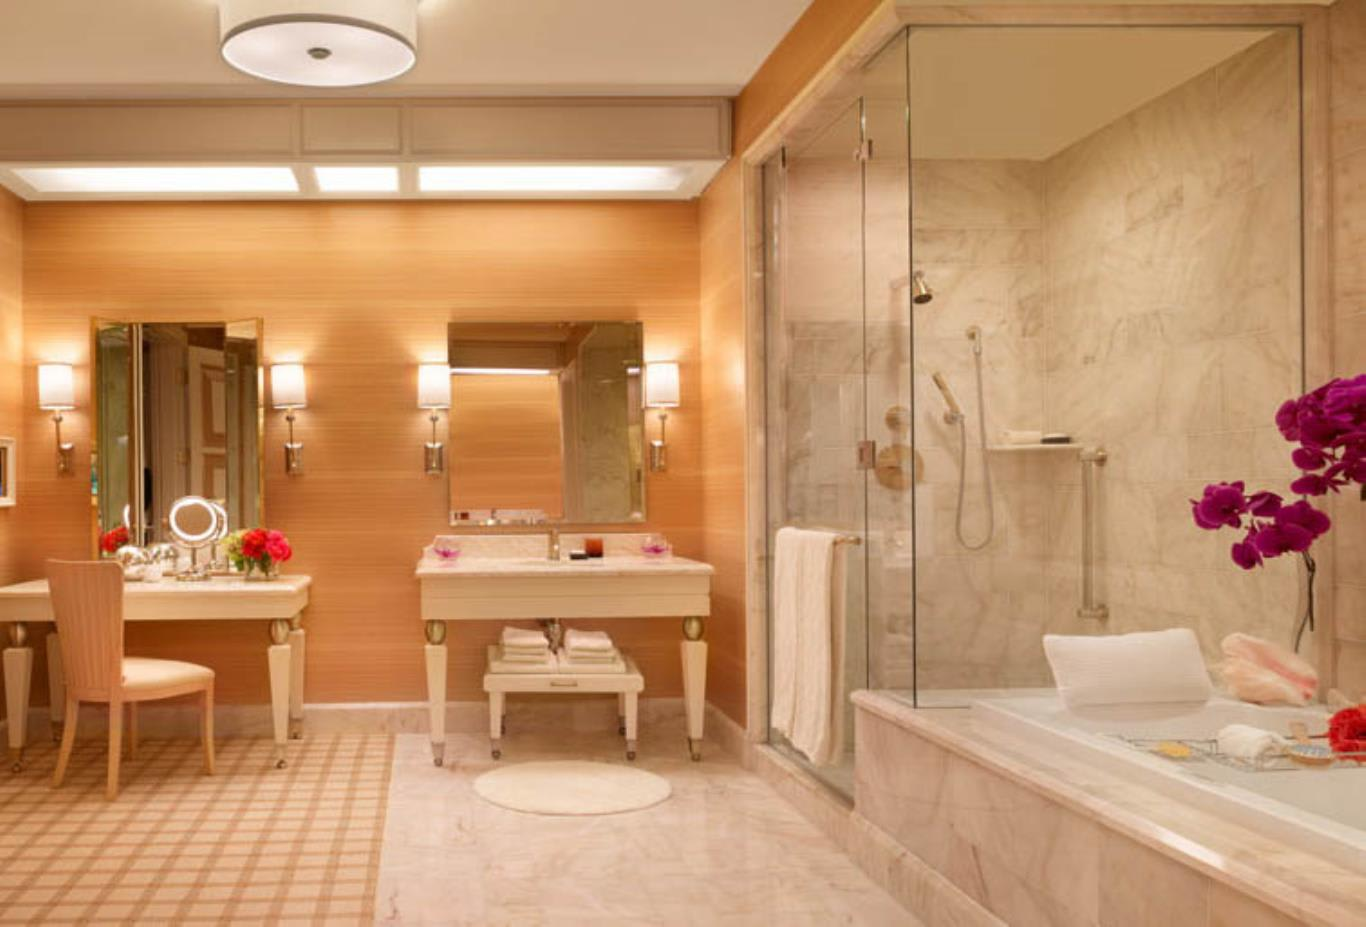 Wynn Parlor Suite Bathroom